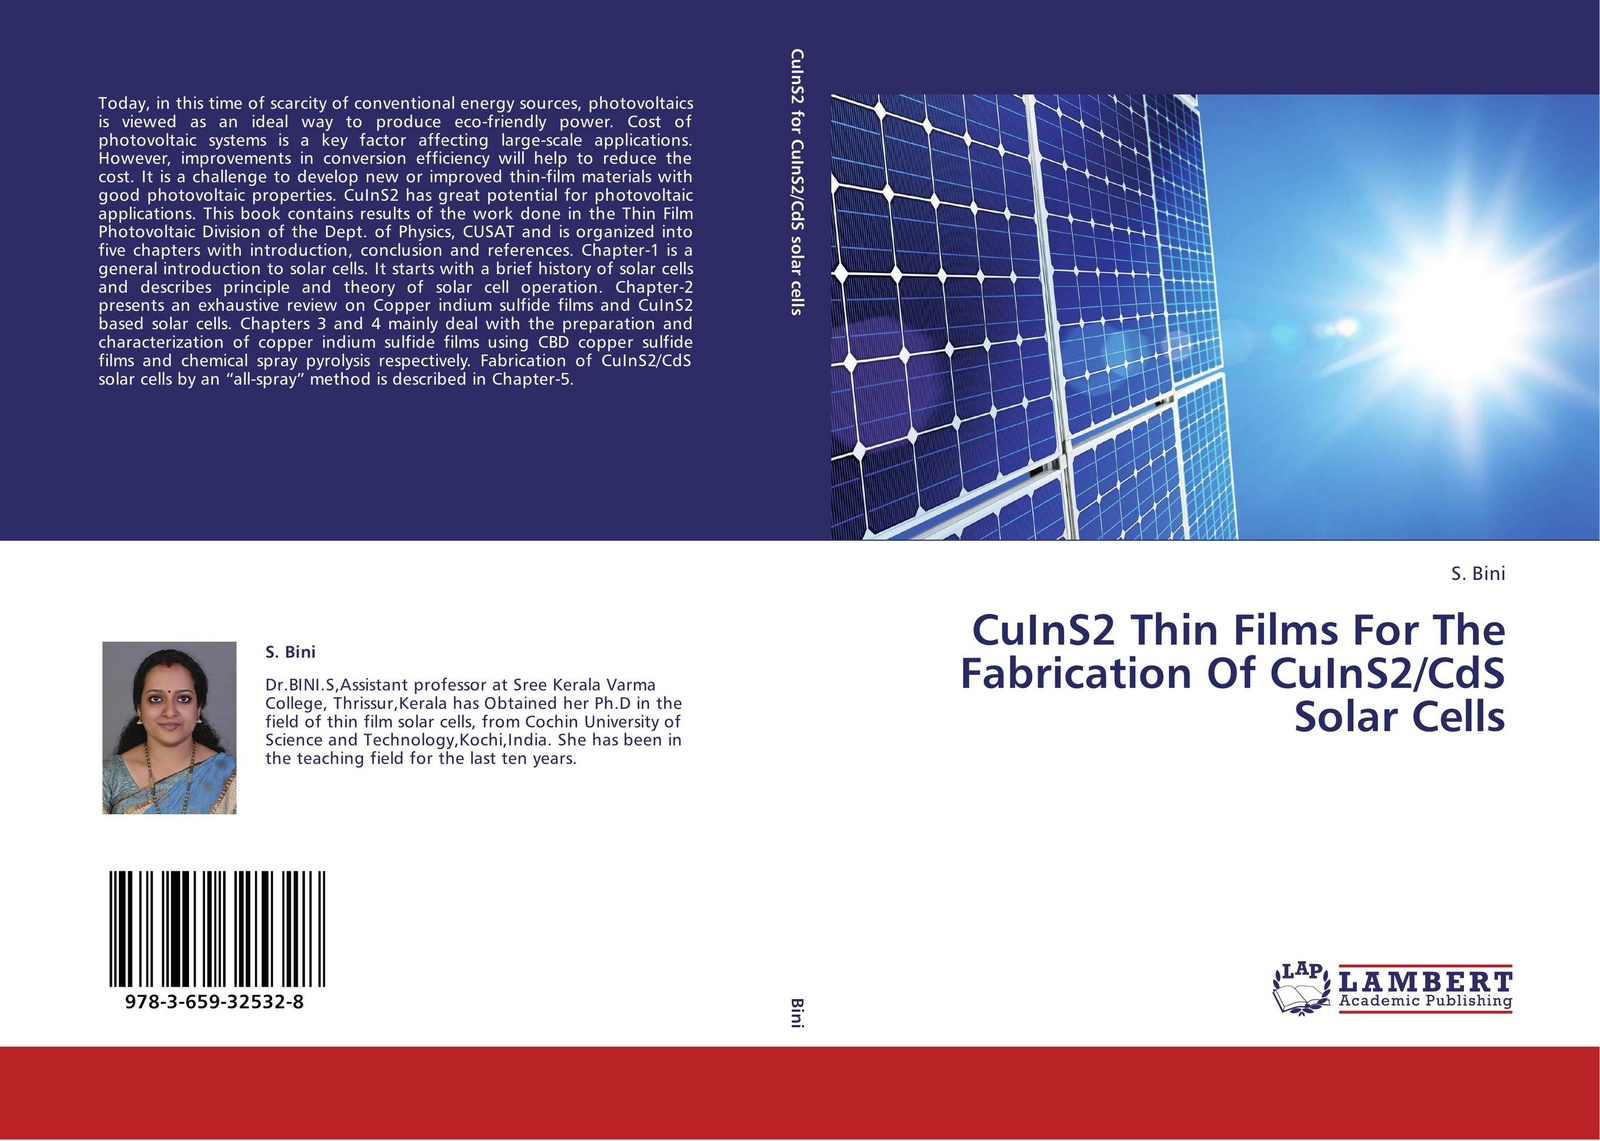 S. Bini CuInS2 Thin Films For The Fabrication Of CuInS2/CdS Solar Cells